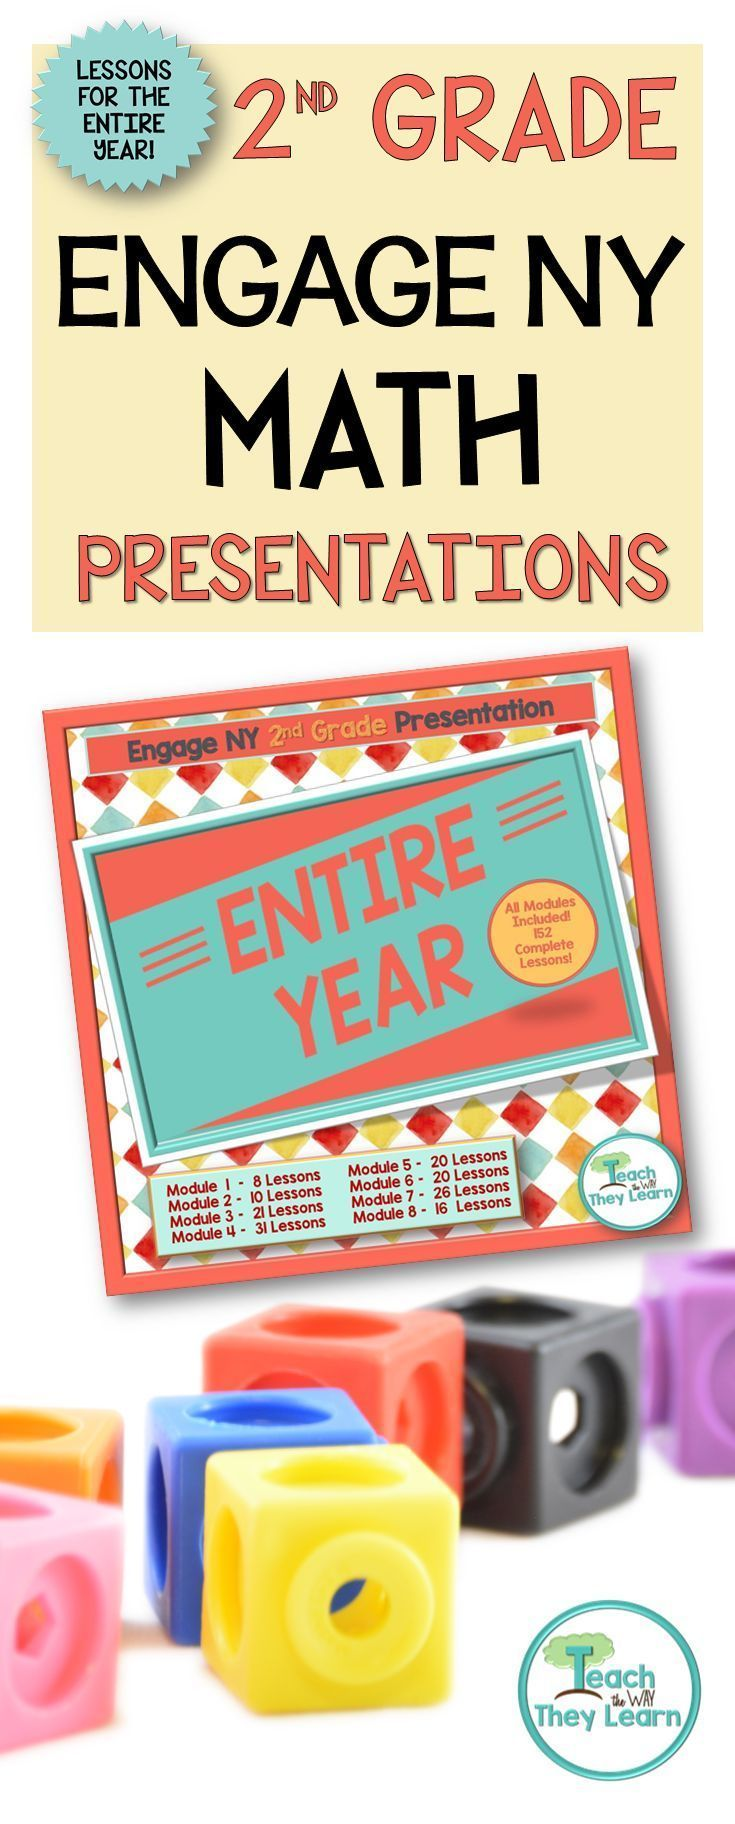 Engage NY presentations to teach the entire year�s math lessons for second grade. Covers the entire 2nd grade year of Engage NY math. Engage NY/Eureka math are Common Core Aligned and awesome math curriculums, but hard to teach from a manual. Put down you